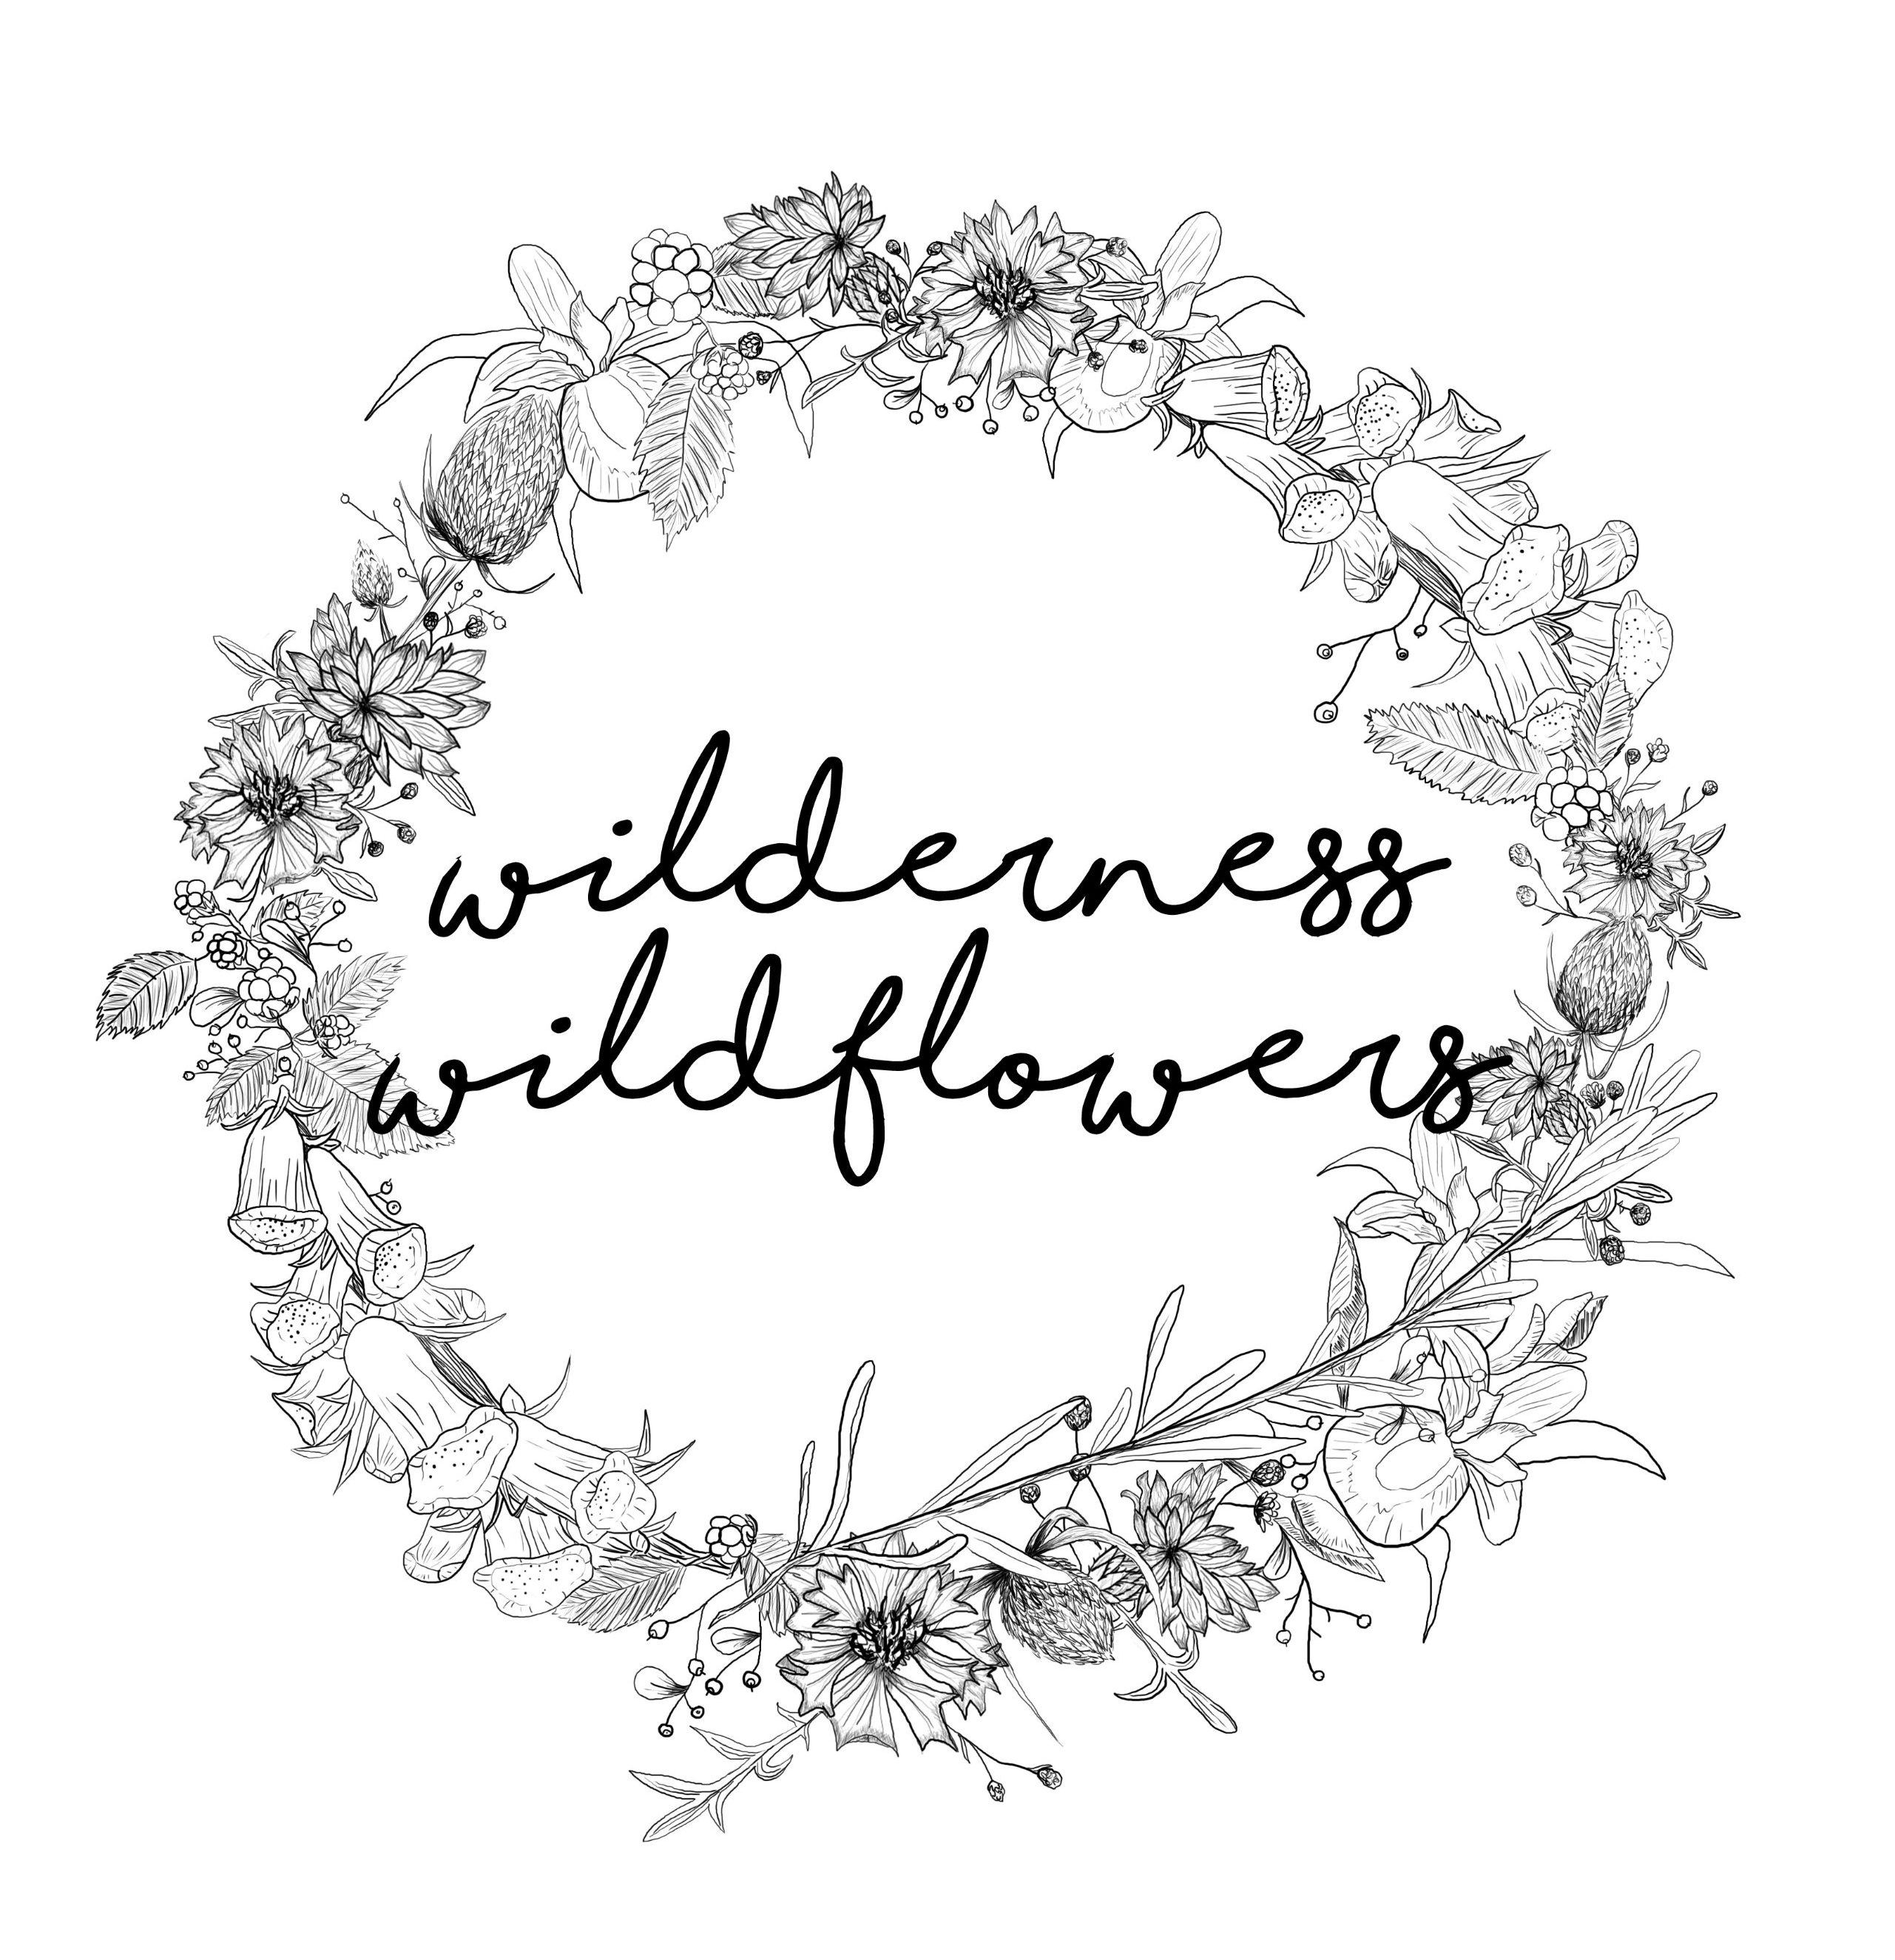 Wilderness Wildflowers